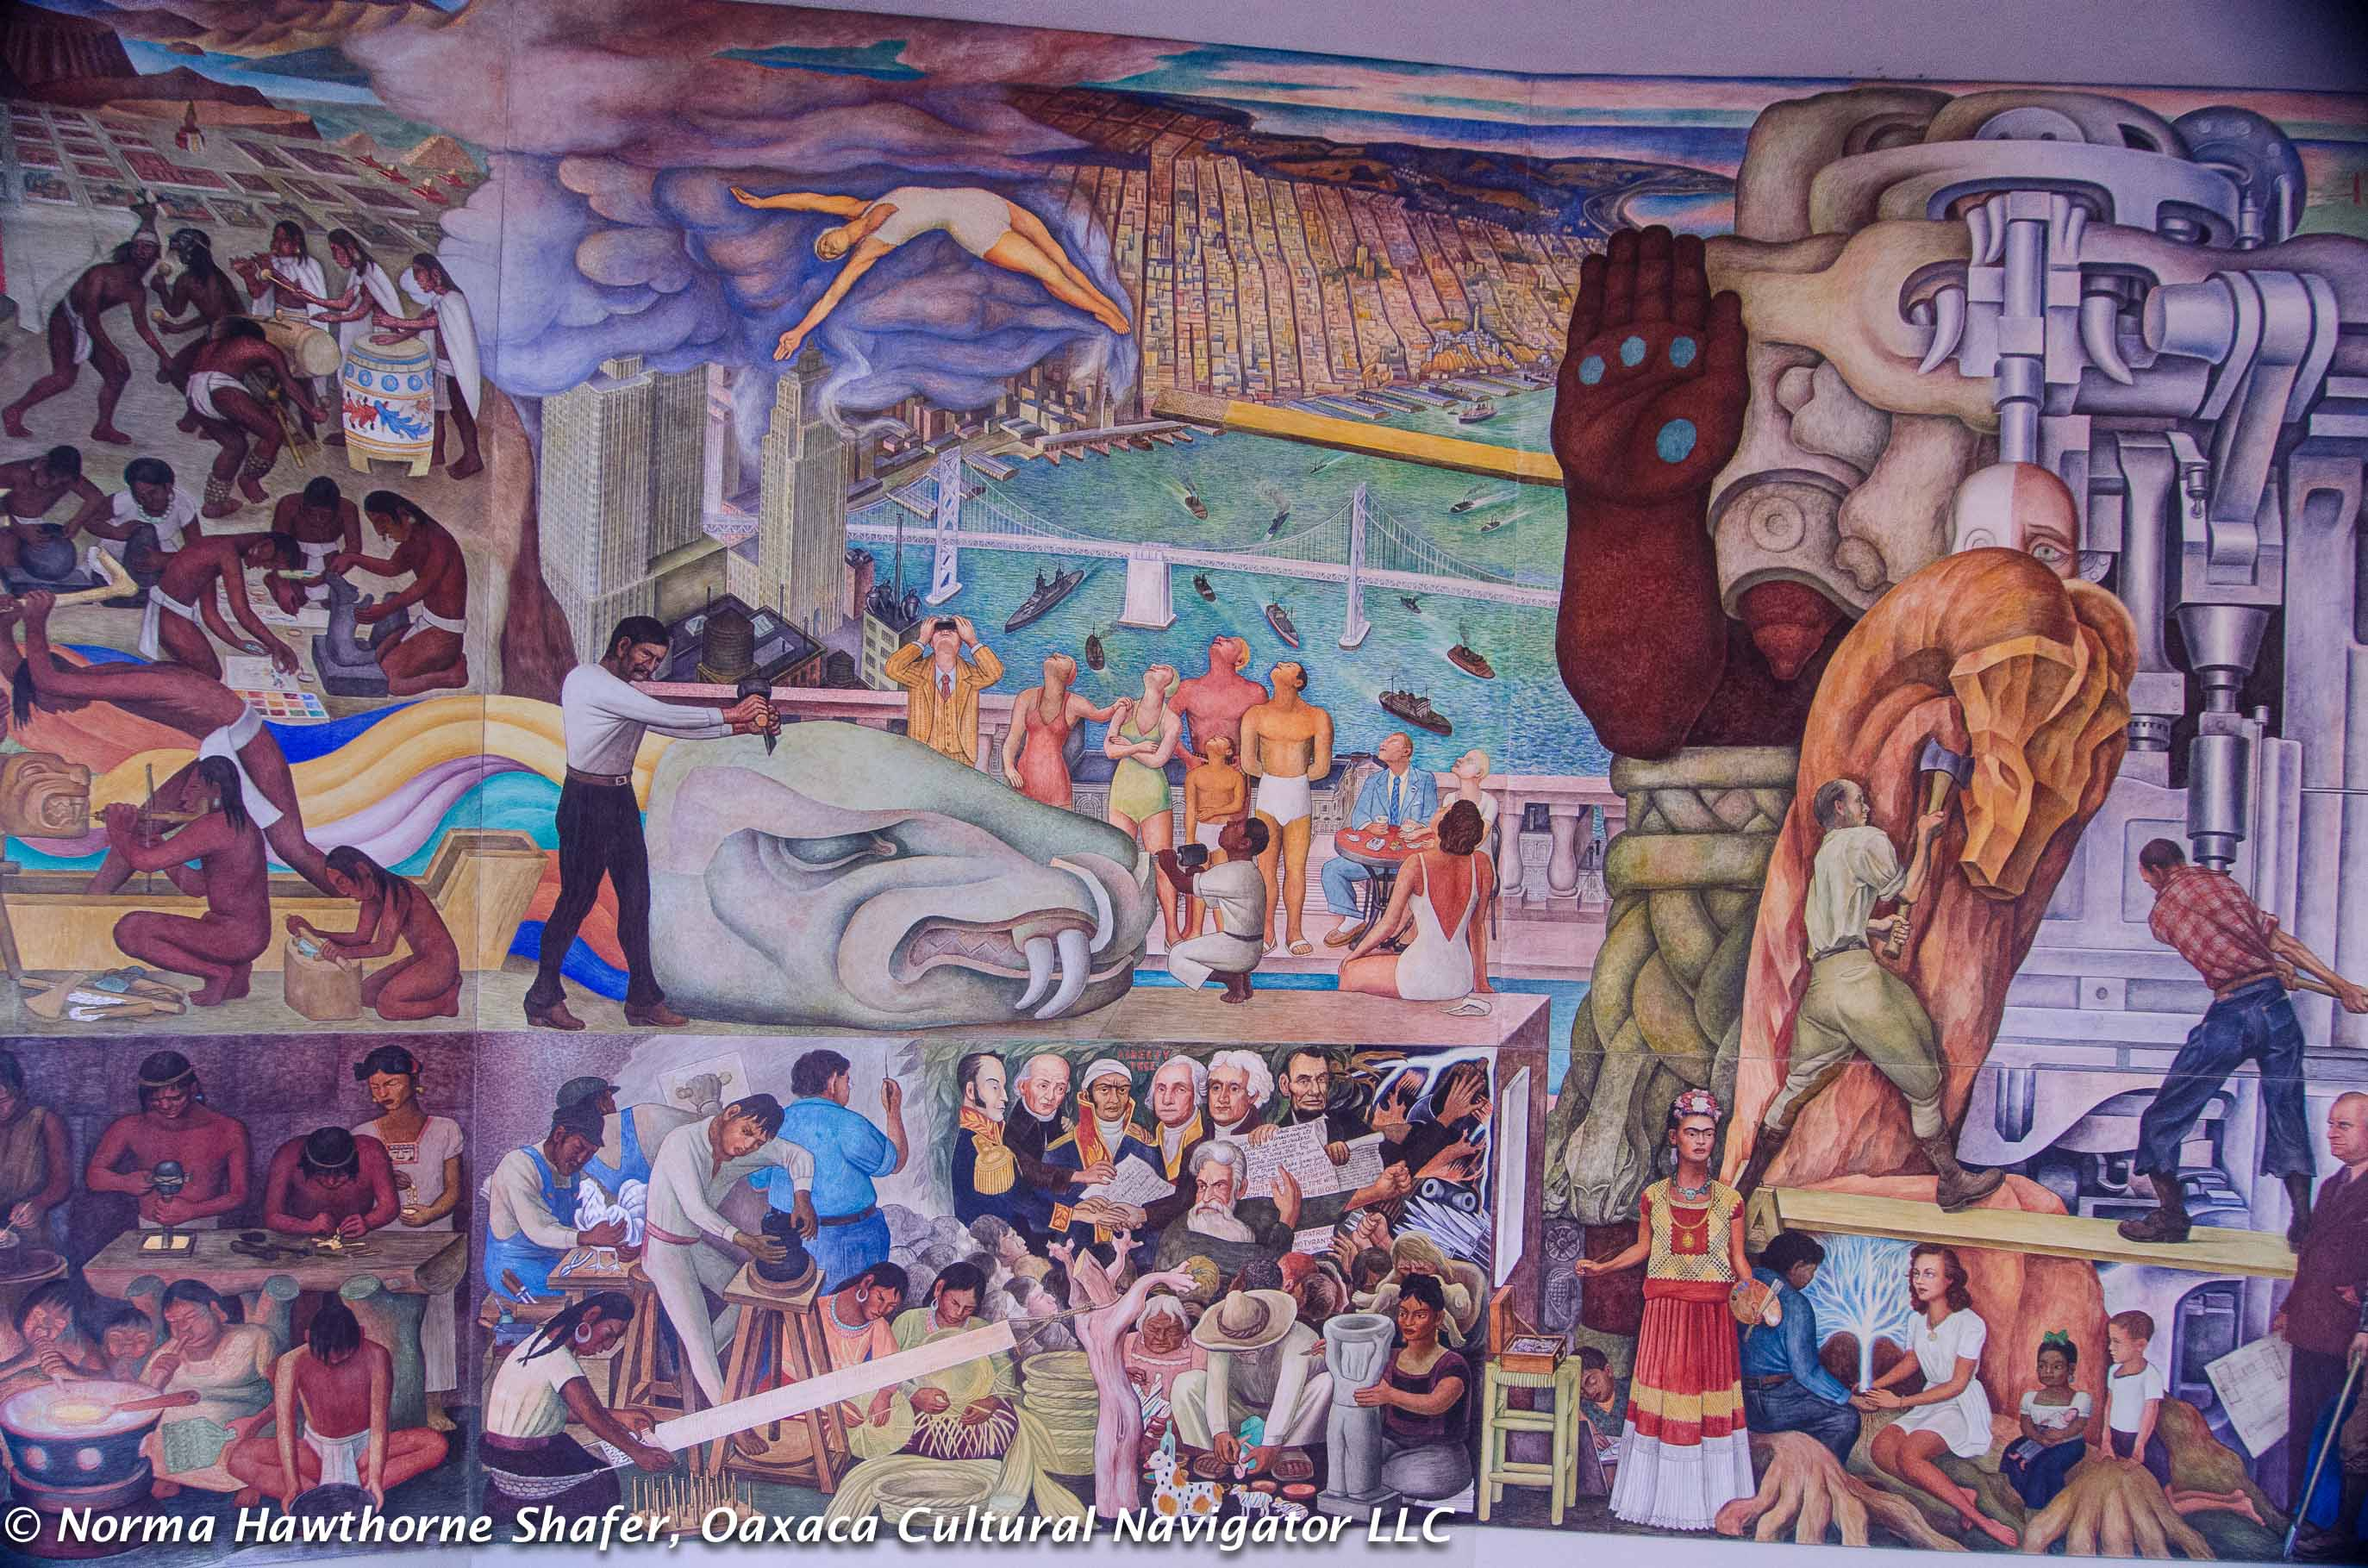 Diego rivera murals in san francisco critical guide for for Diego rivera lenin mural